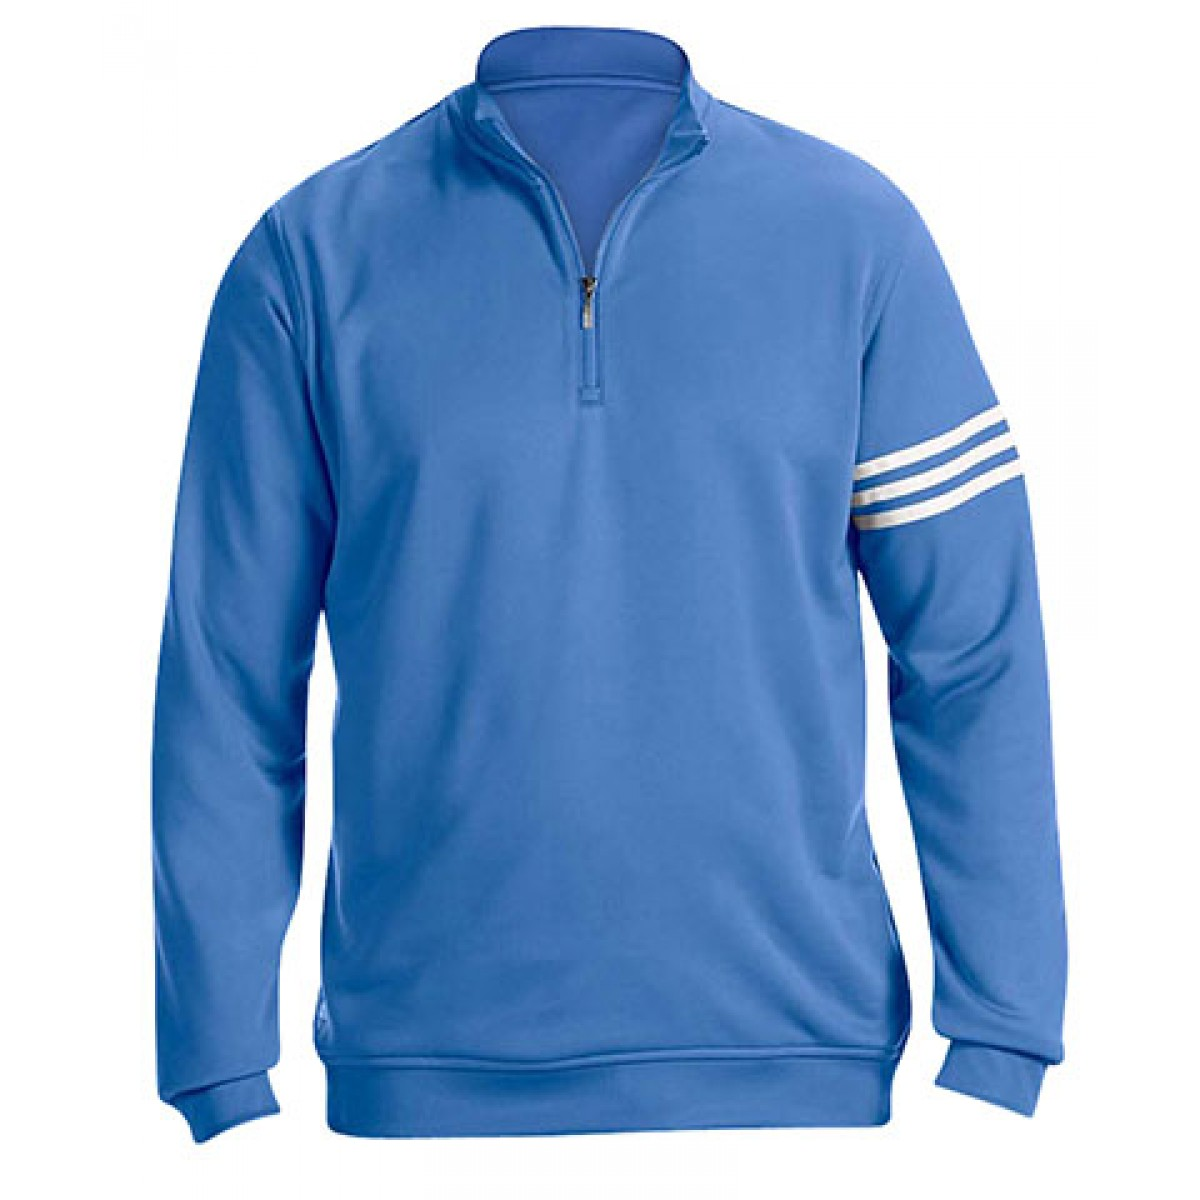 Adidas Golf Men's ClimaLite® 3-Stripes Pullover-Blue-XL